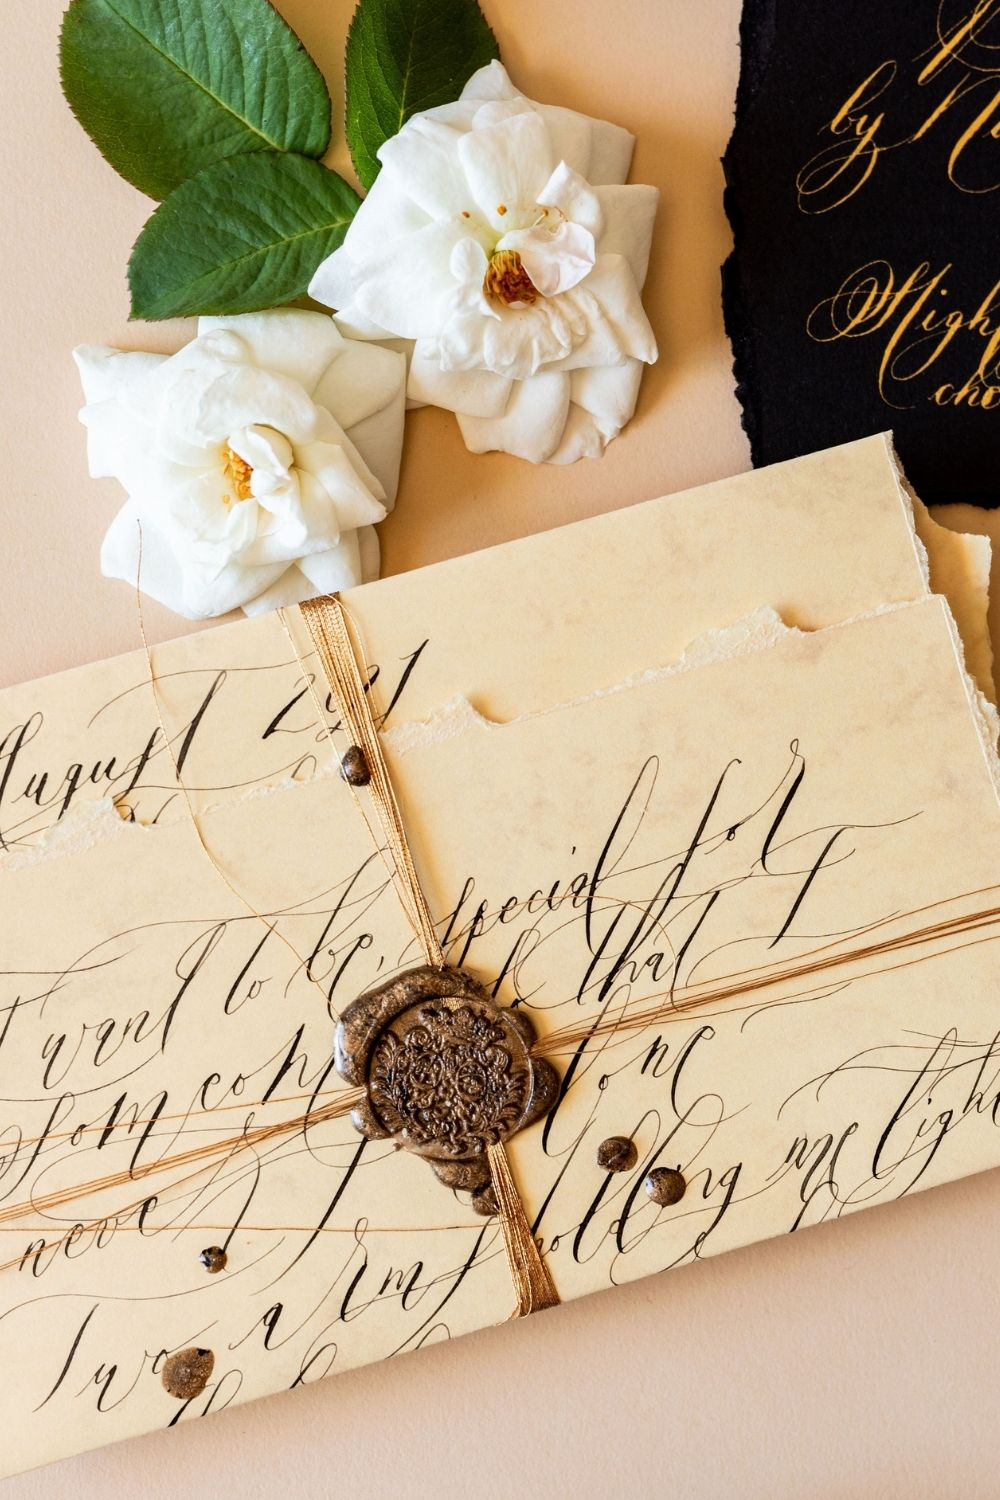 Villa Balbiano wedding invitations with wild and loose, bohemian calligraphy for an Italian wedding